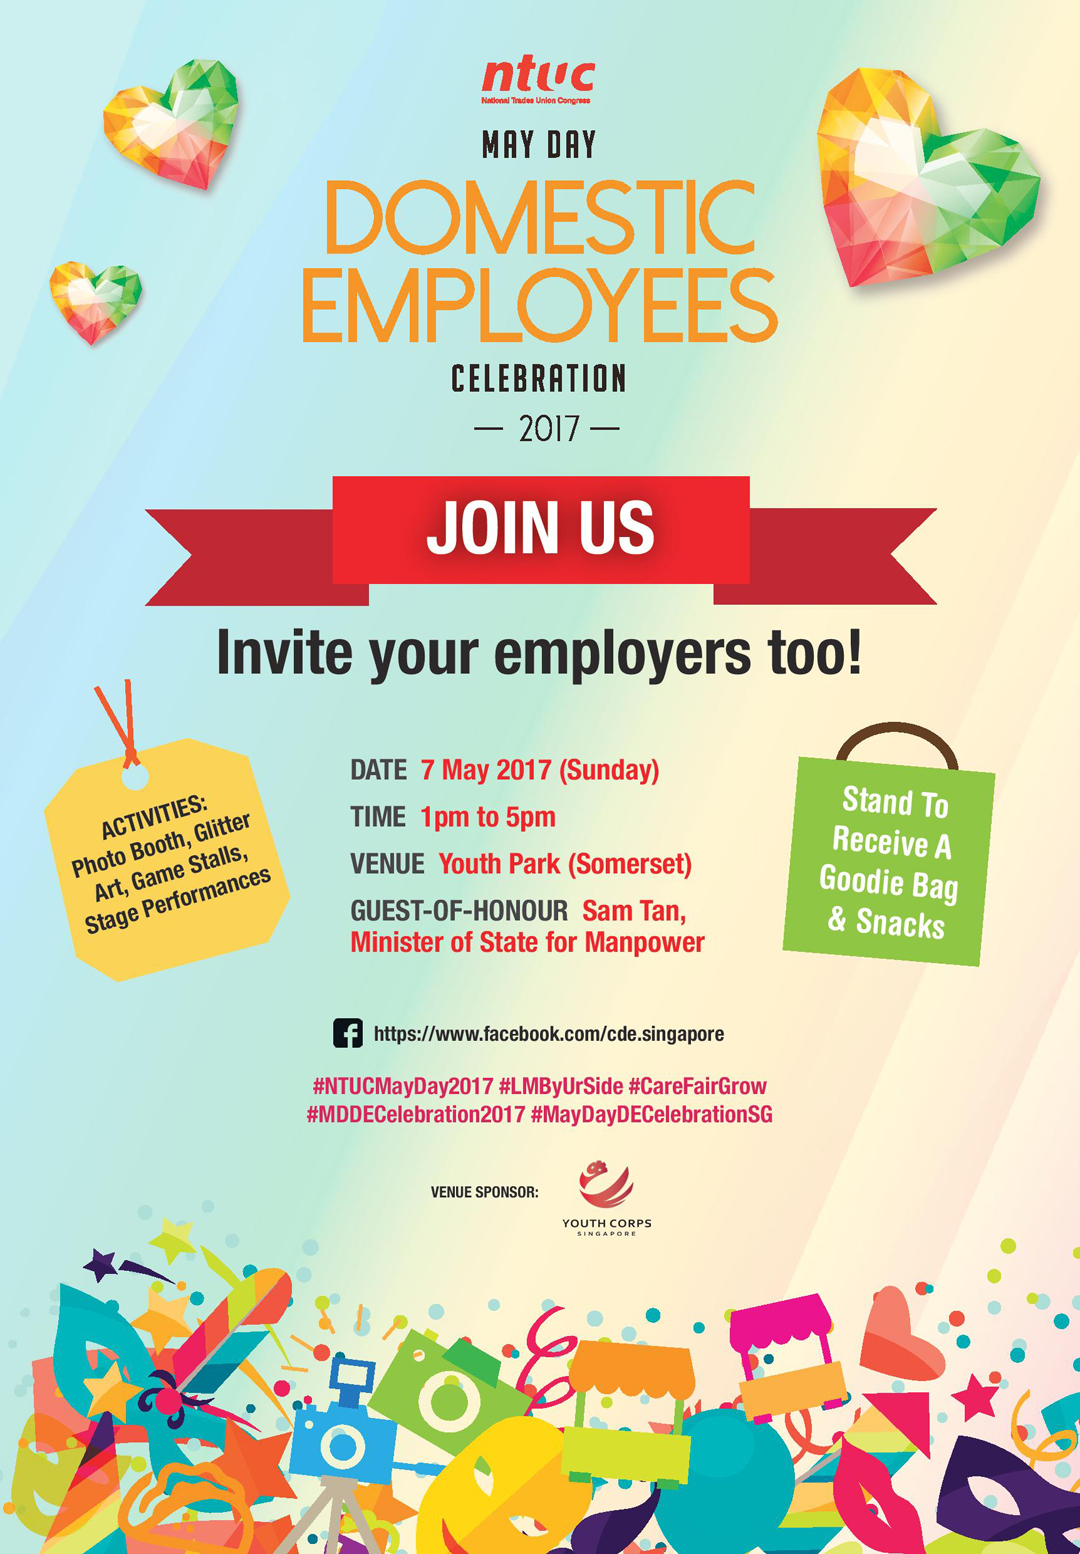 ntuc u portal may day domestic employees celebration 2017 event poster